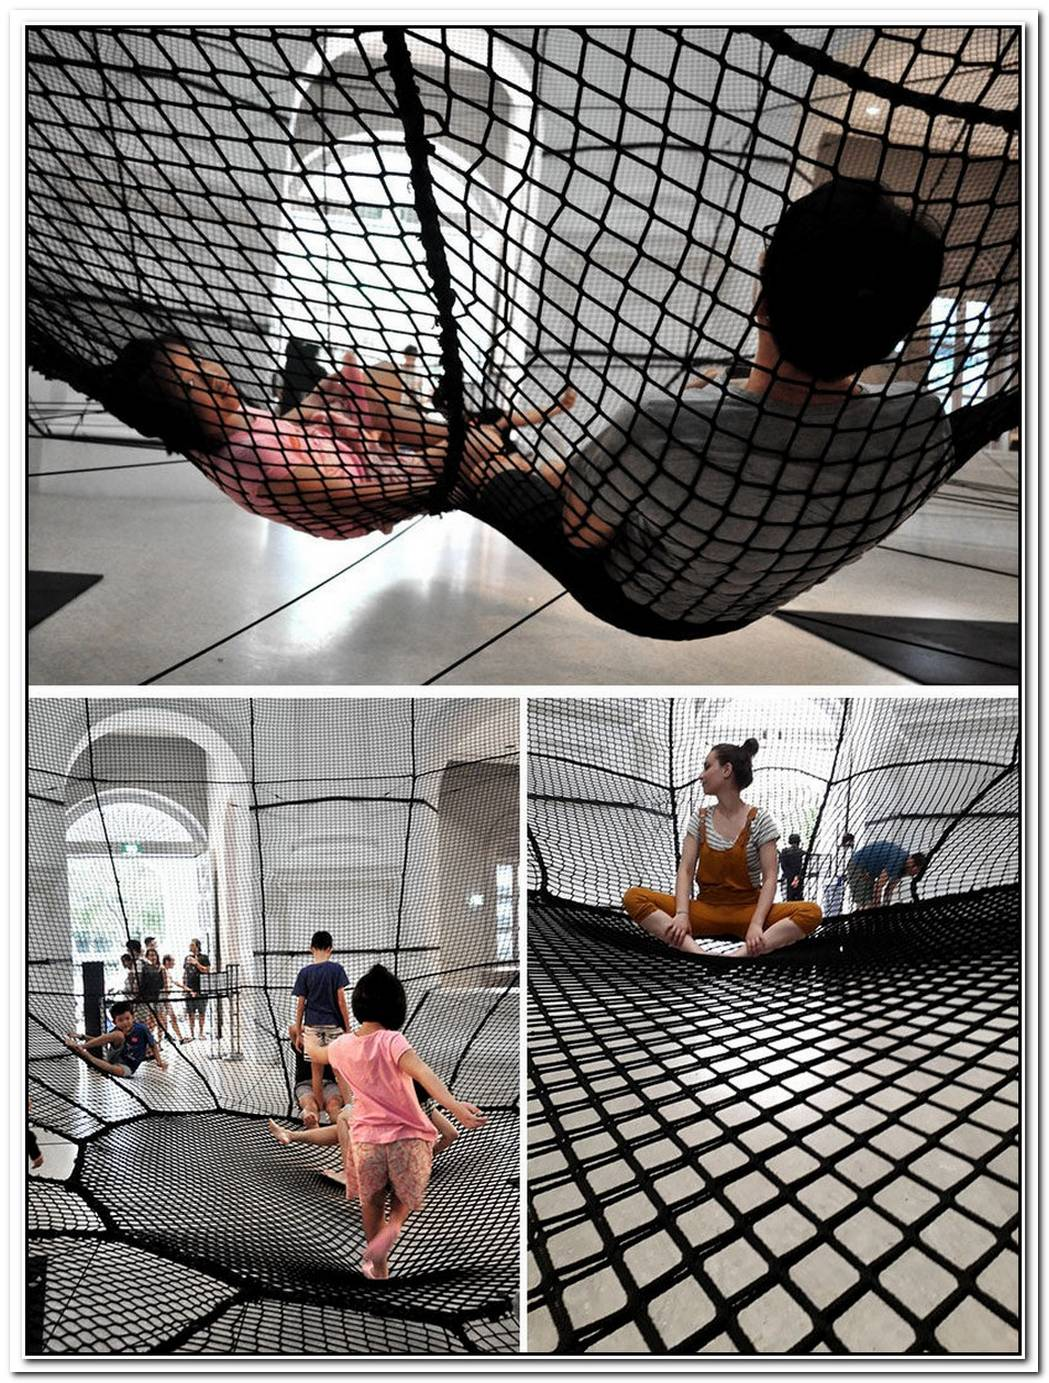 Bouncy Safety Net Installation Encourages Museum Fun In Singapore